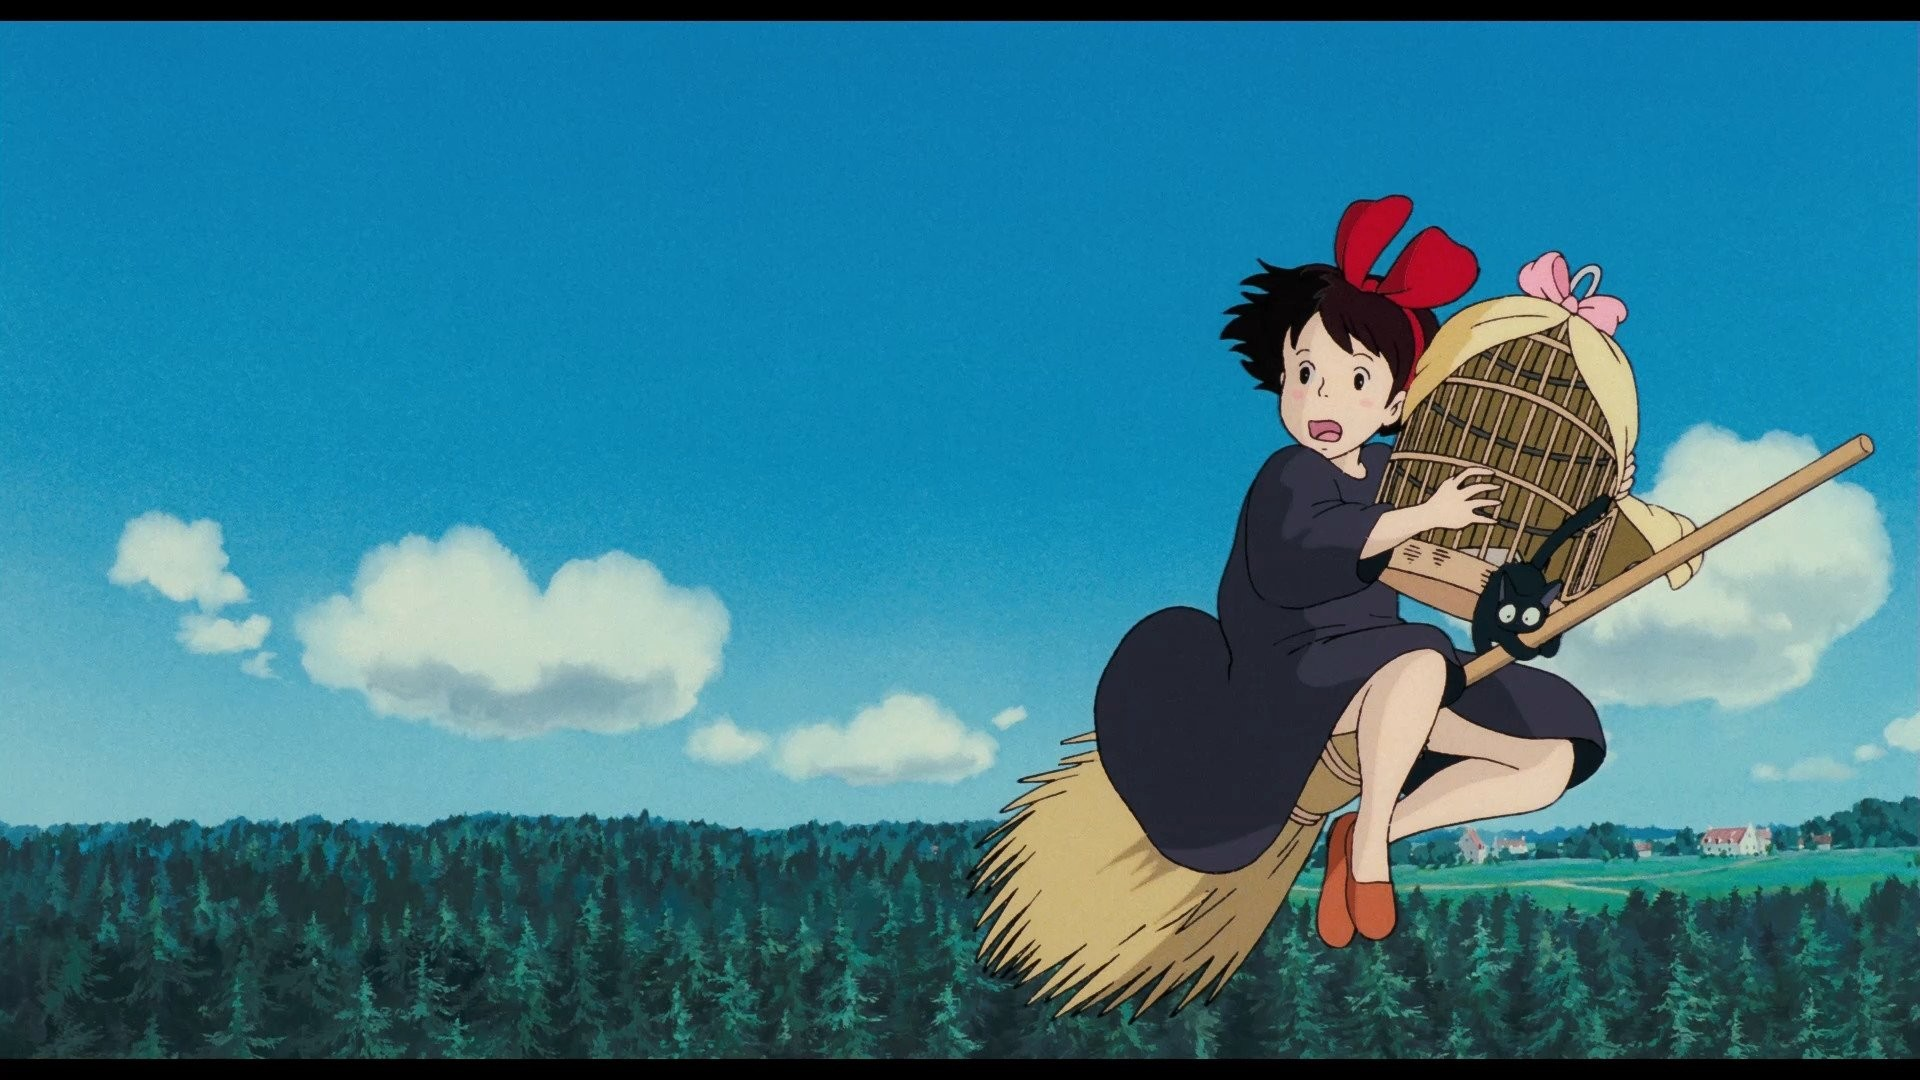 Kiki S Delivery Service Wallpaper Download Free Stunning Hd